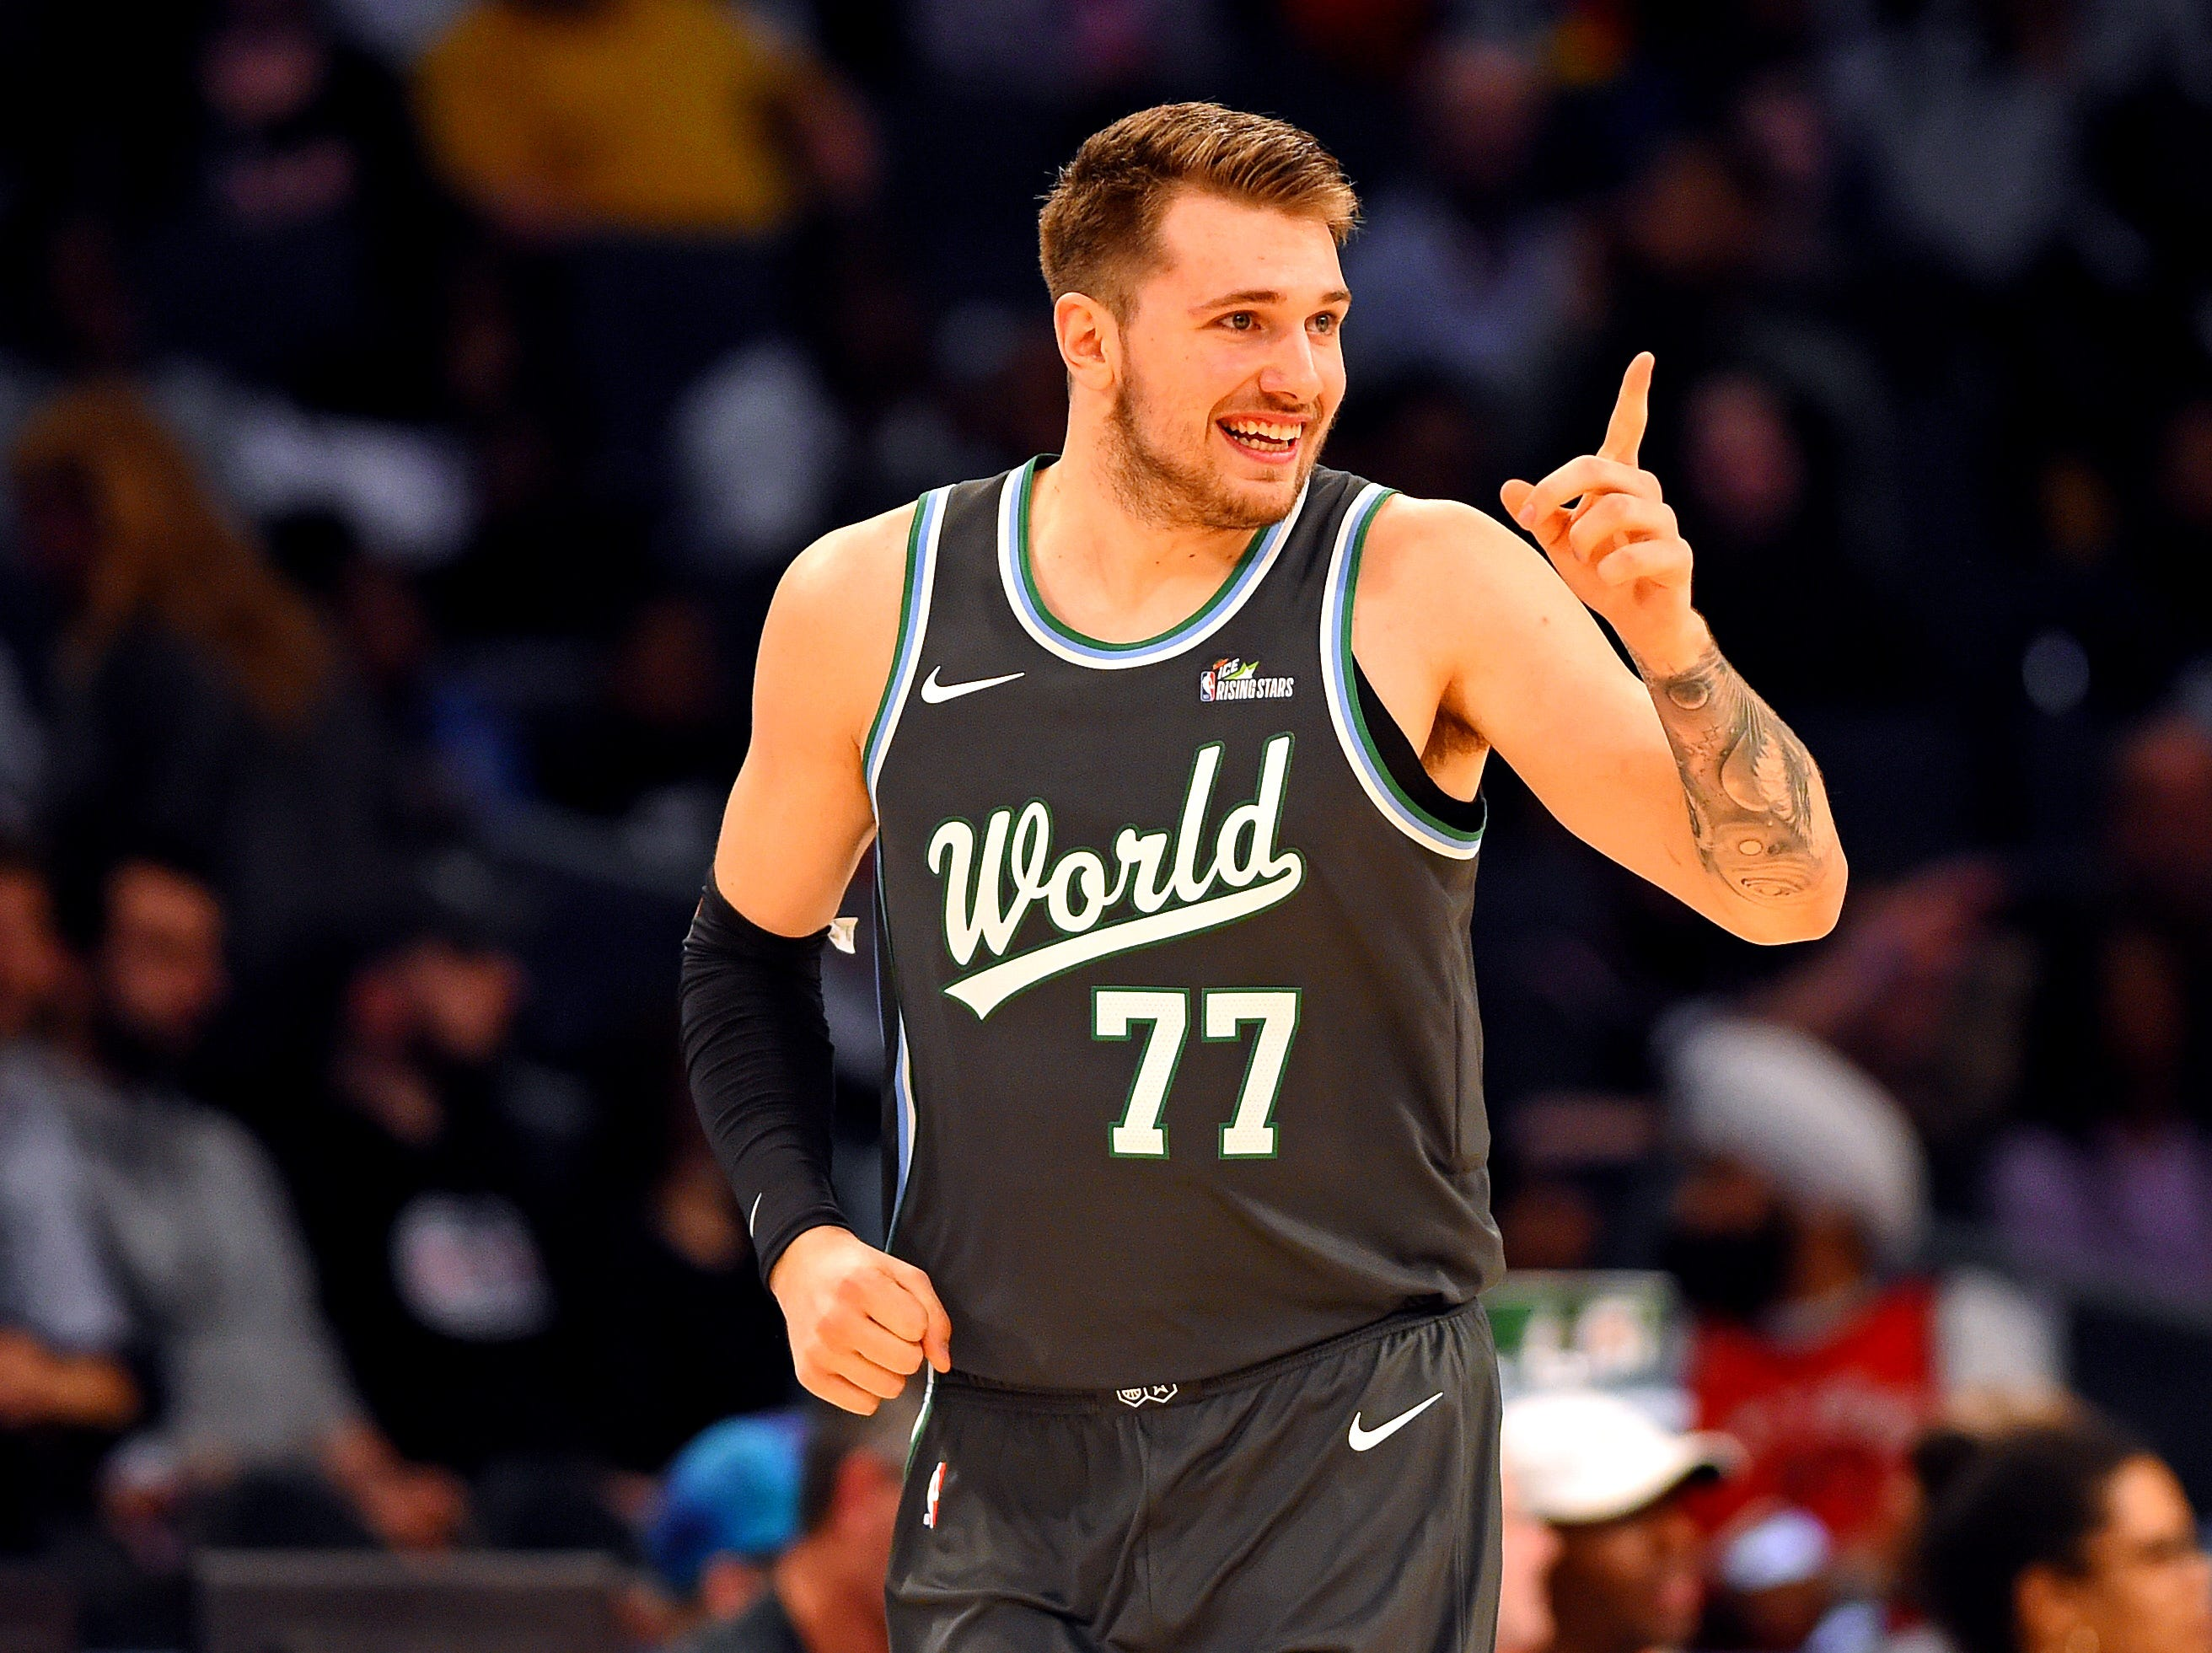 World Team guard Luka Doncic of the Dallas Mavericks reacts during the All-Star Rising Stars game.